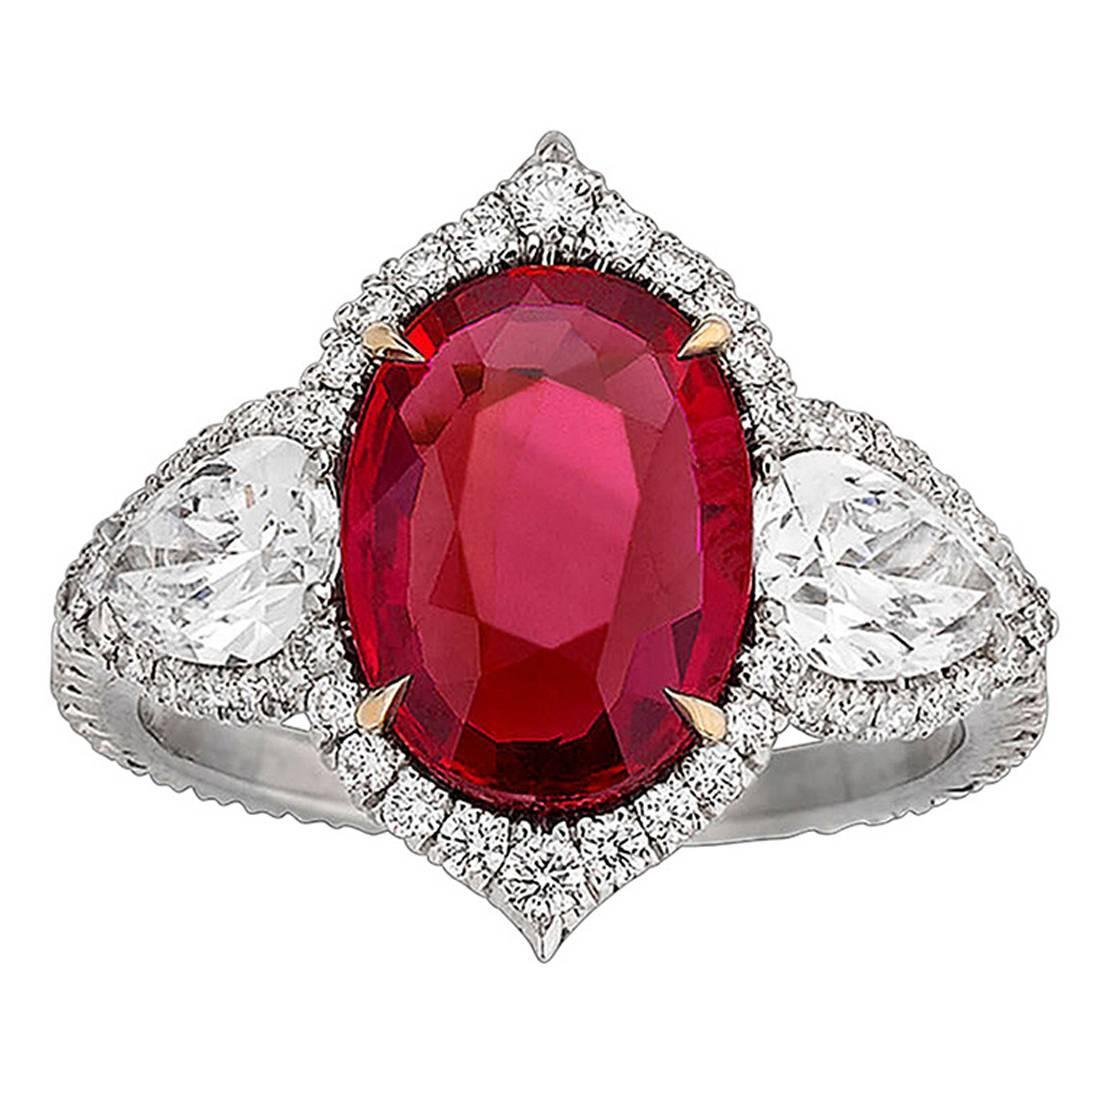 A Gorgeous Untreated Ruby and Diamond Ring 3.02 Carats.